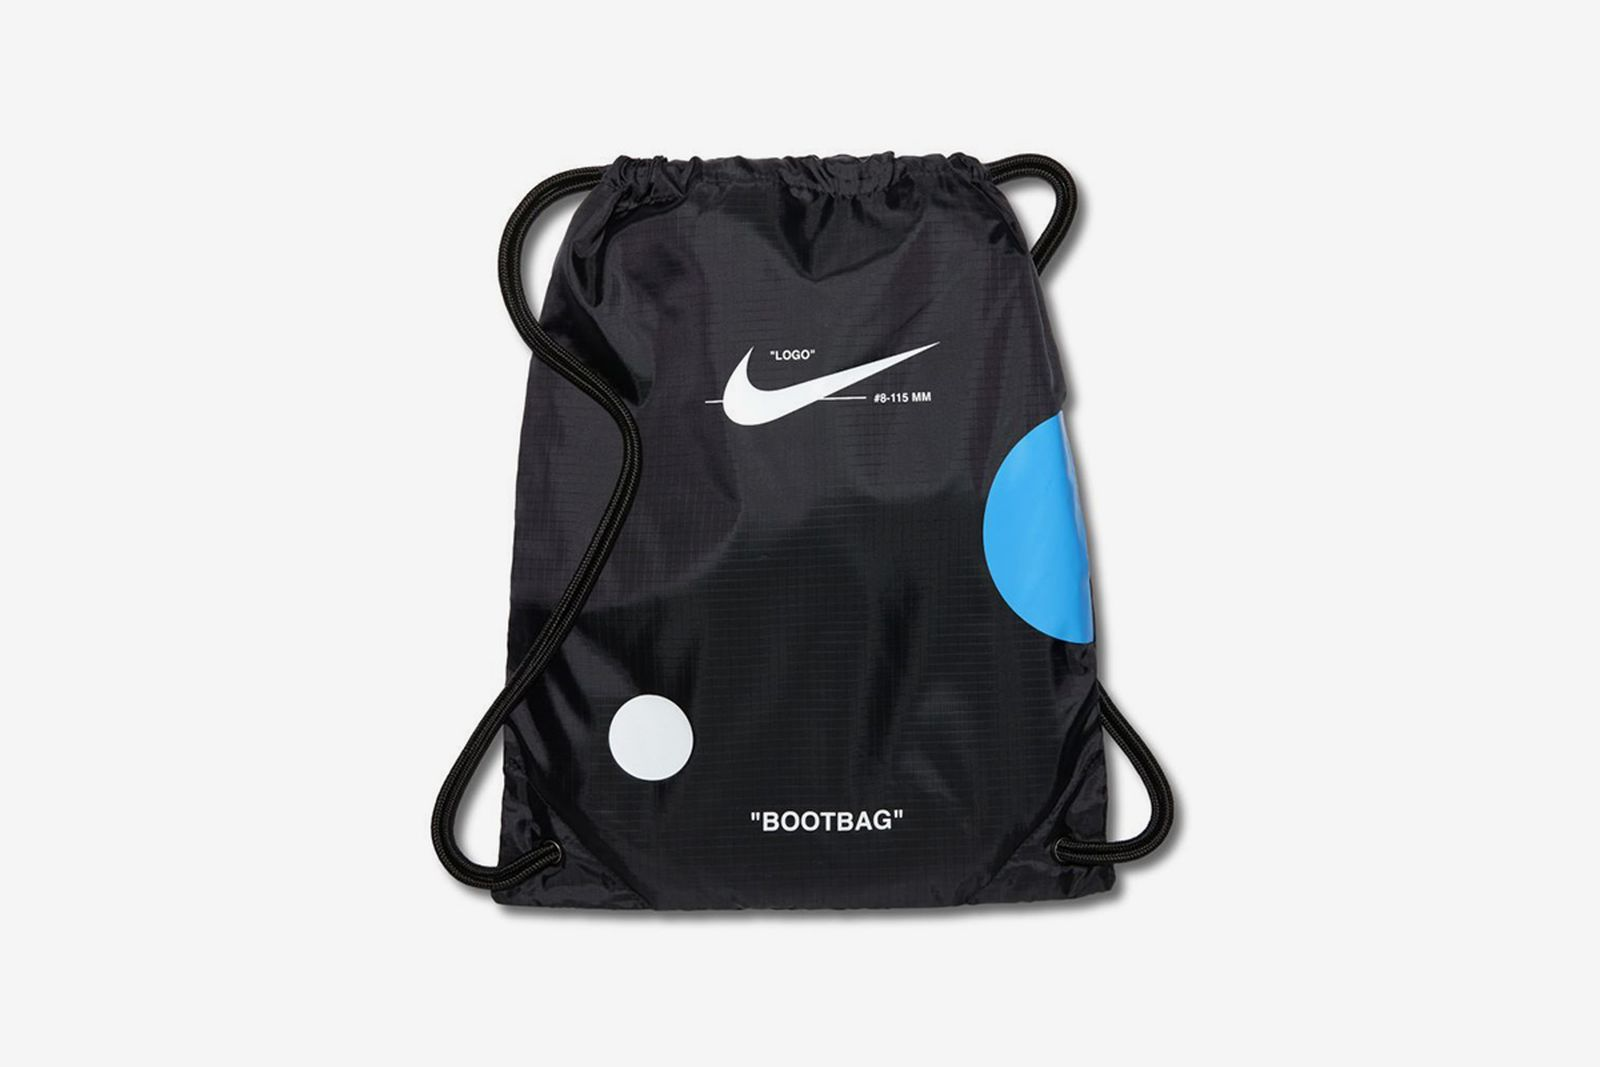 Zoom Fly Mercurial5 2018 FIFA World Cup Nike OFF-WHITE c/o Virgil Abloh